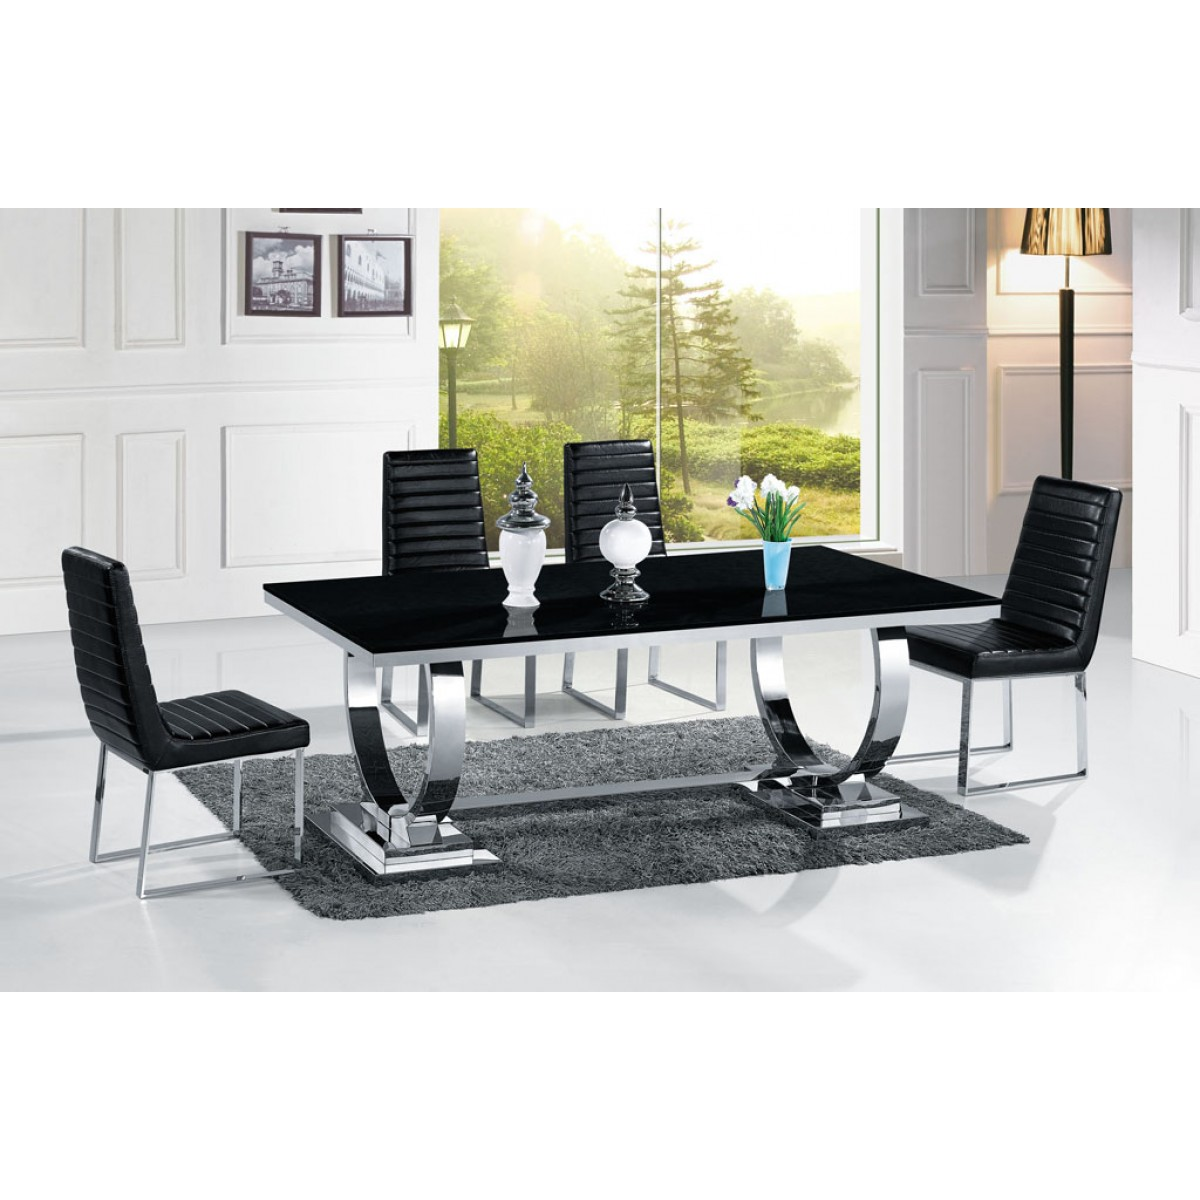 Table de salle manger en inox venezia mabre ou verre for Table salle a manger moderne design